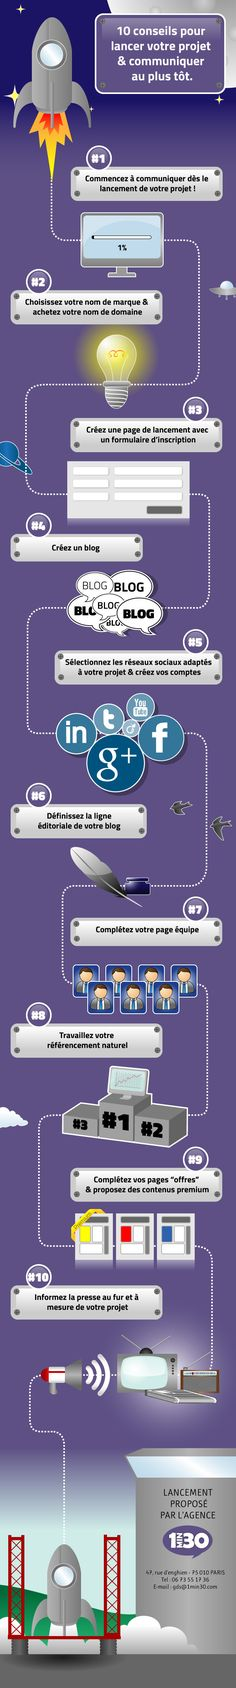 Top 10 des types d'infographies pour faire le buzz !